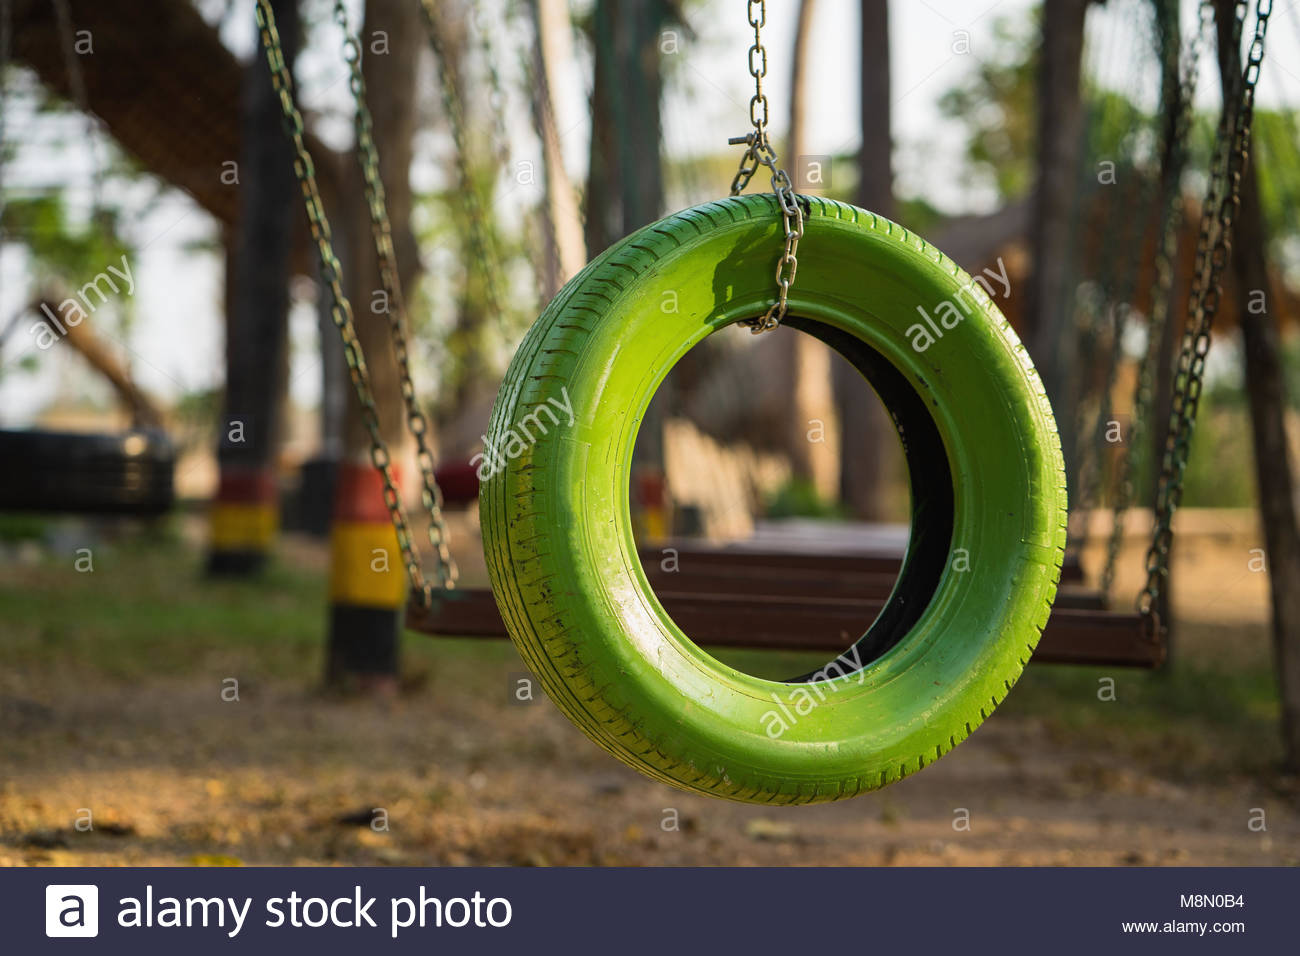 Color old car tire hanging on tree at playground Stock Photo ...